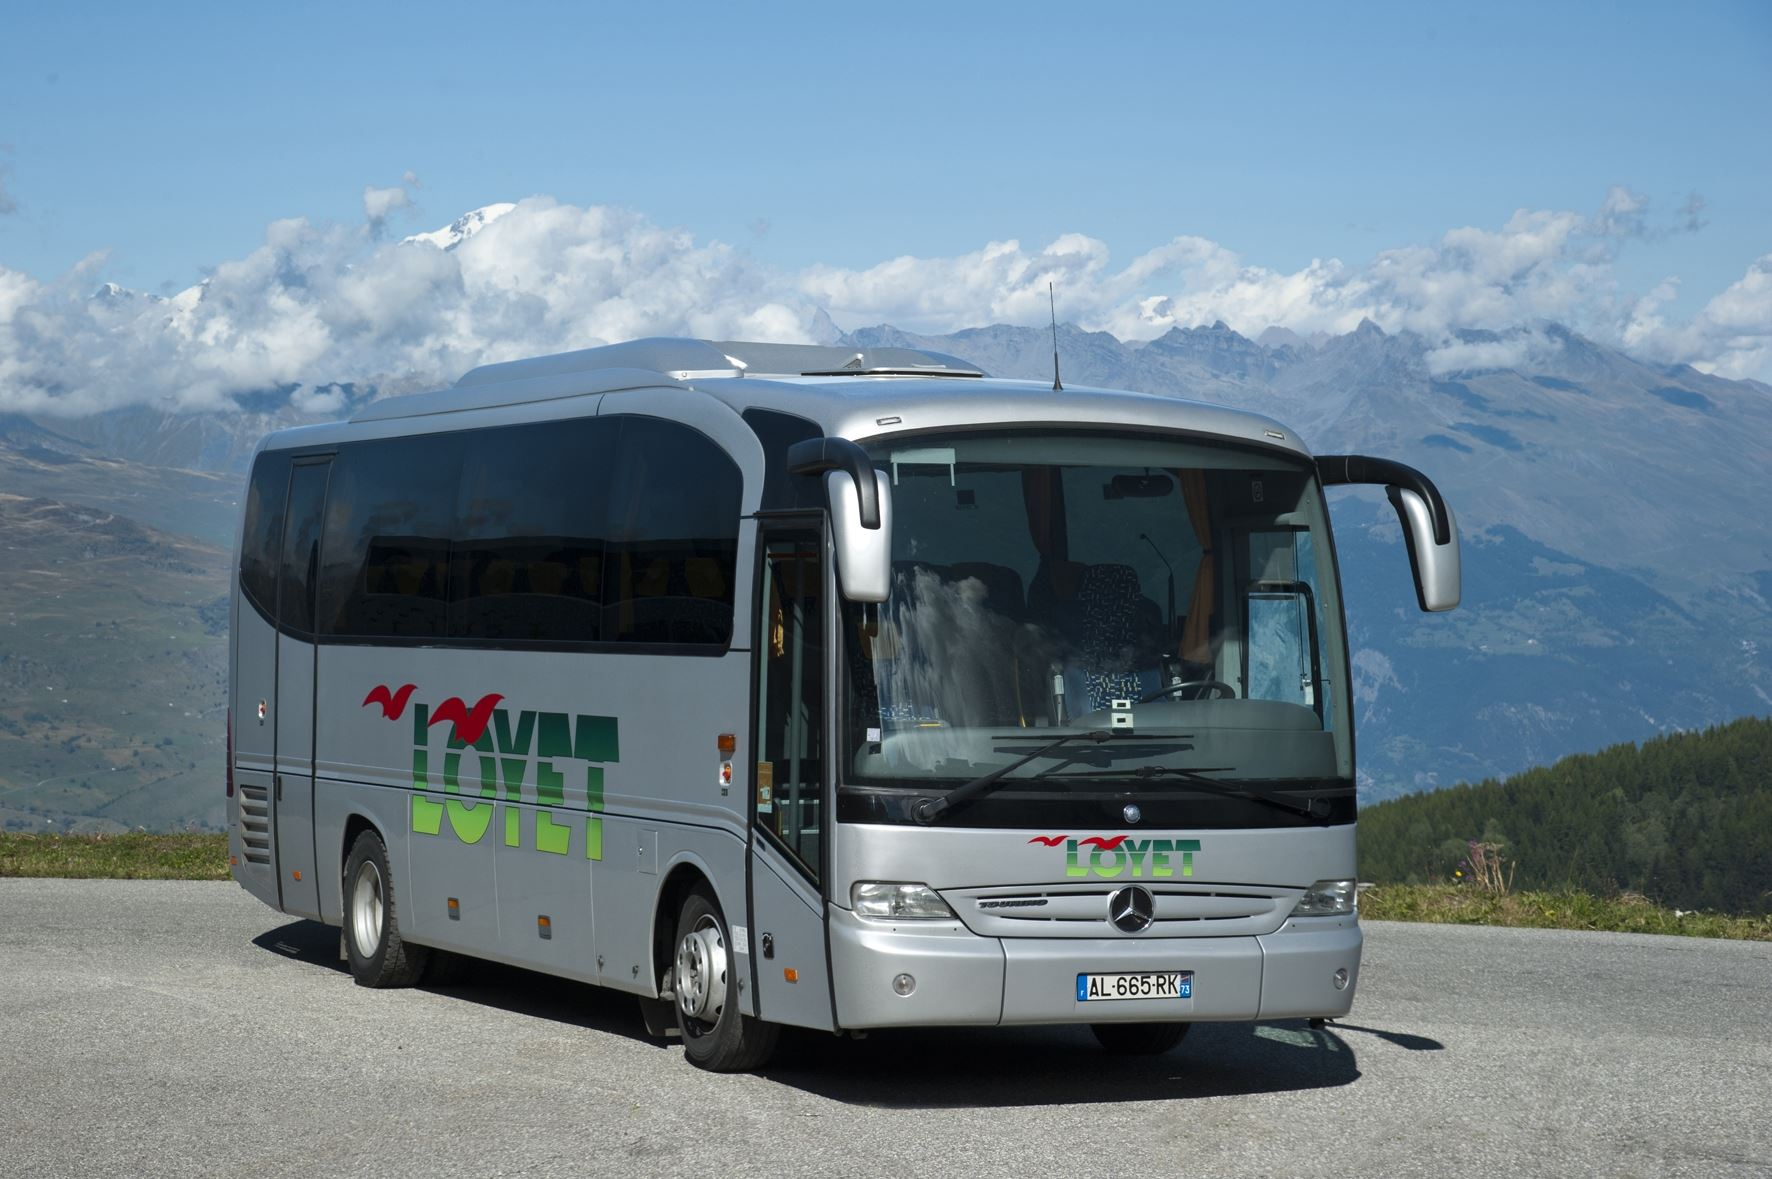 SUNDAY BUS TRANSFER FROM GENEVA AIRPORT TO VAL THORENS